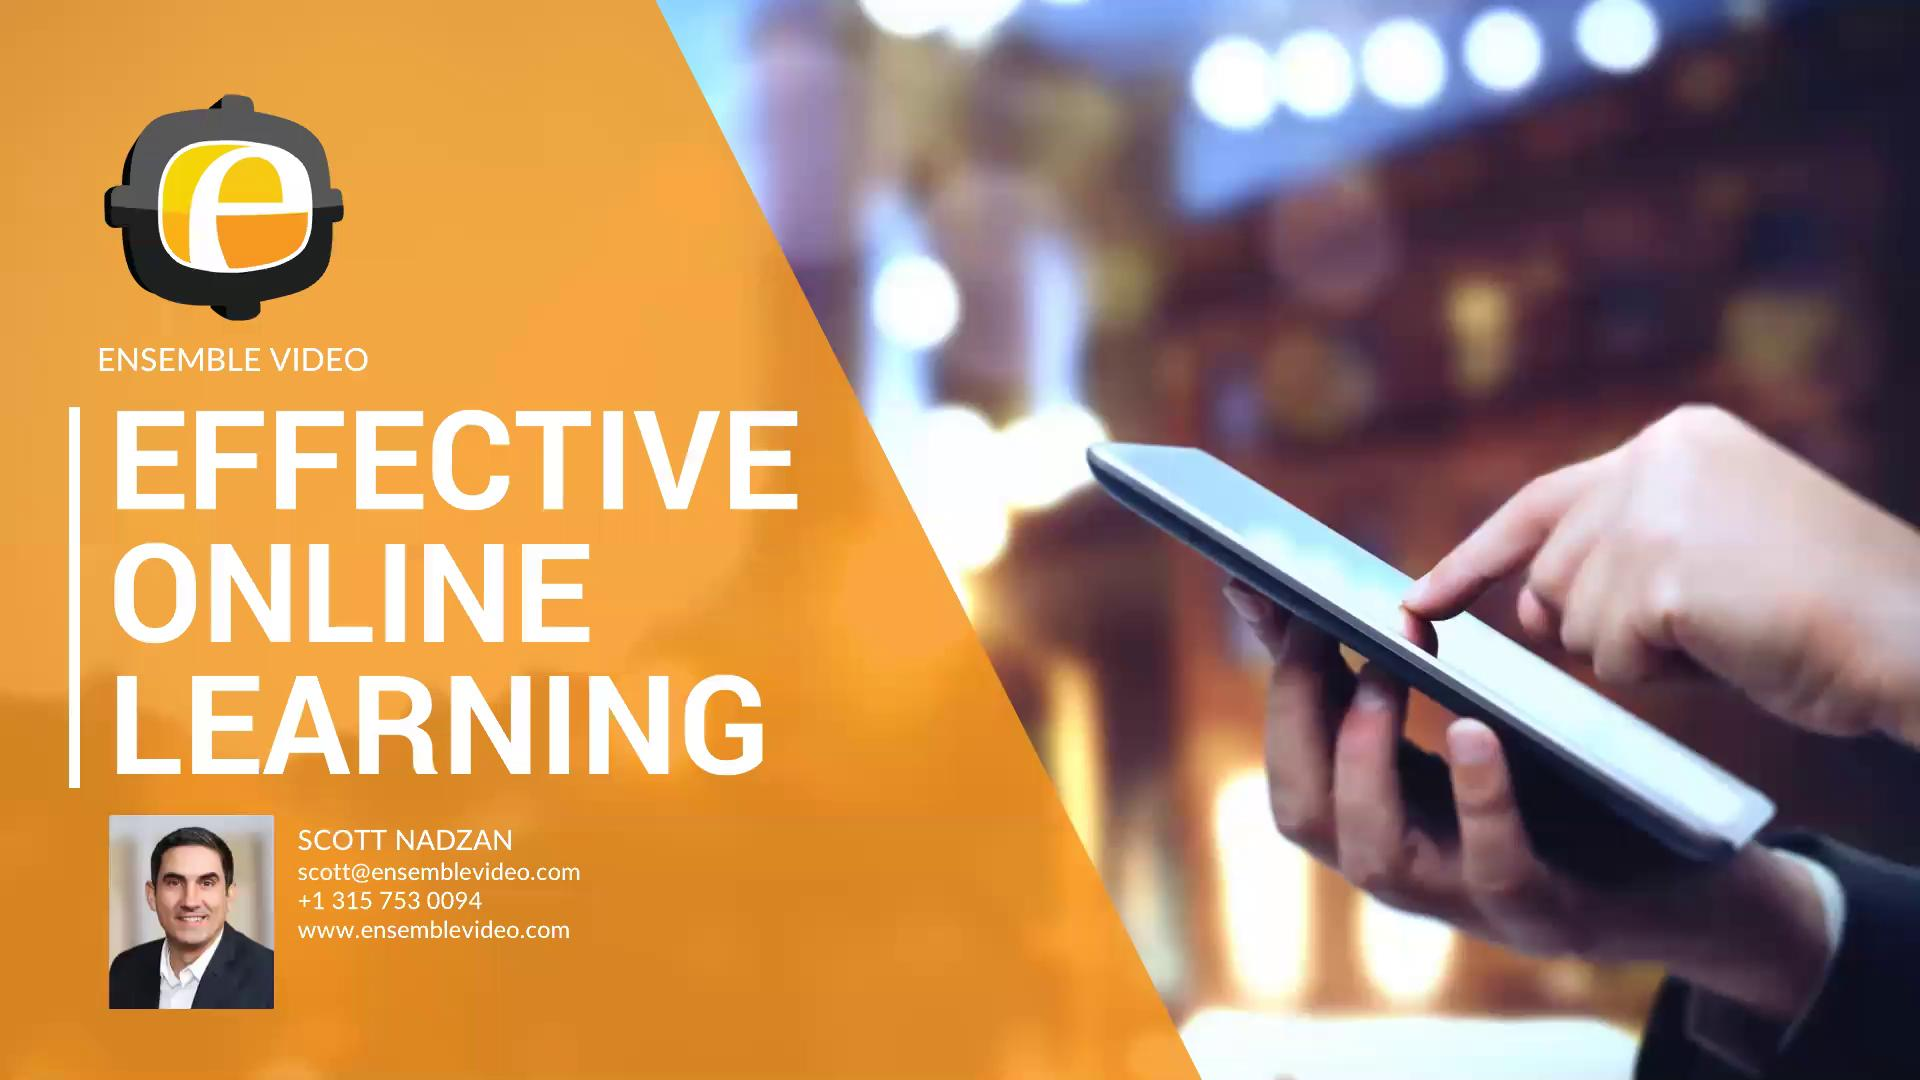 Effective Online Learning with Ensemble Video